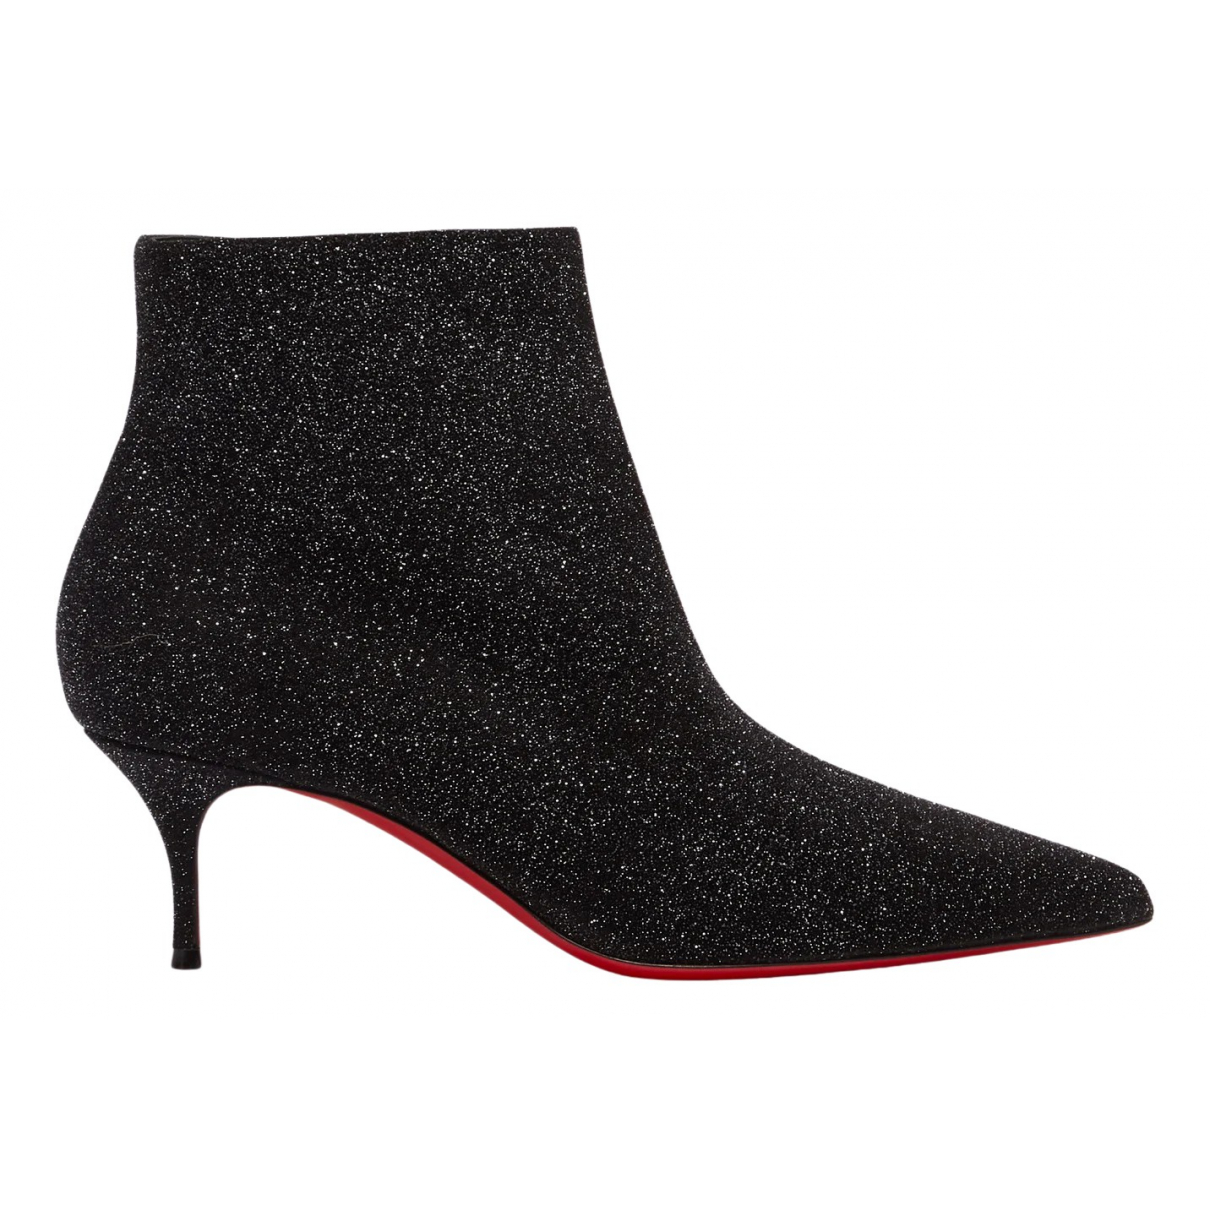 Christian Louboutin \N Black Cloth Ankle boots for Women 38 EU